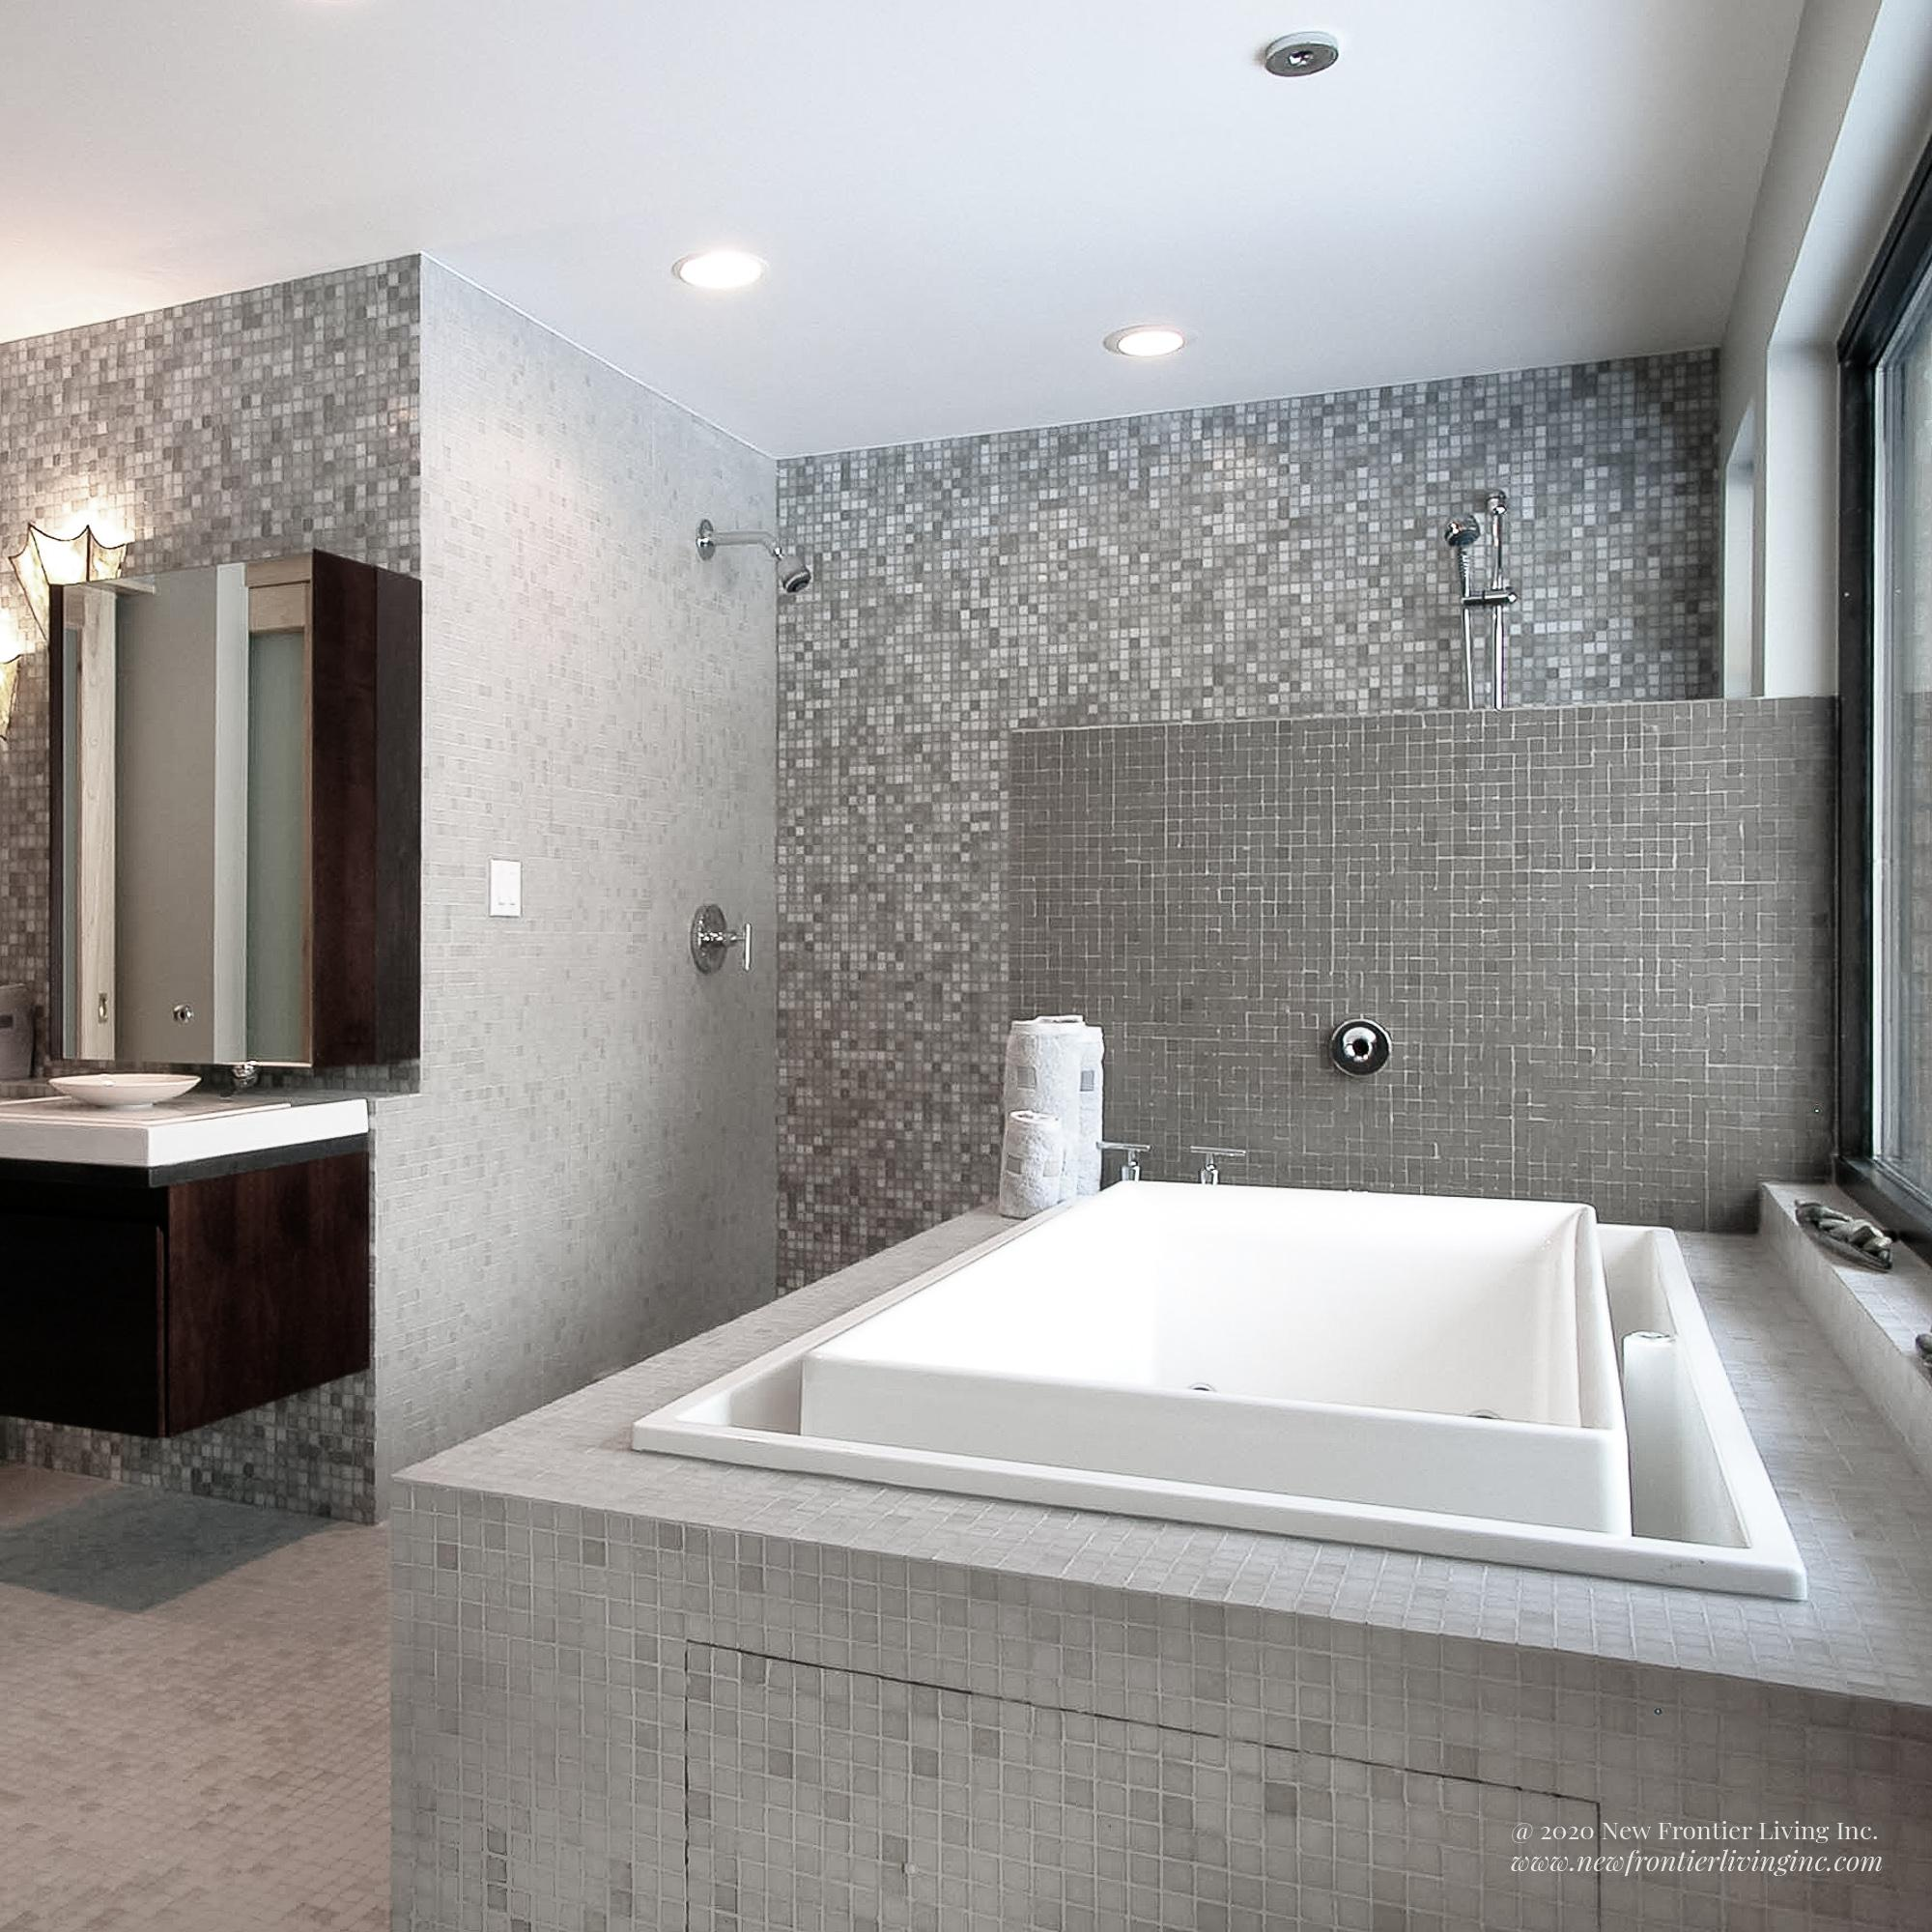 White and gray all ceramic bathroom with a tub and sink and standup-shower without a door